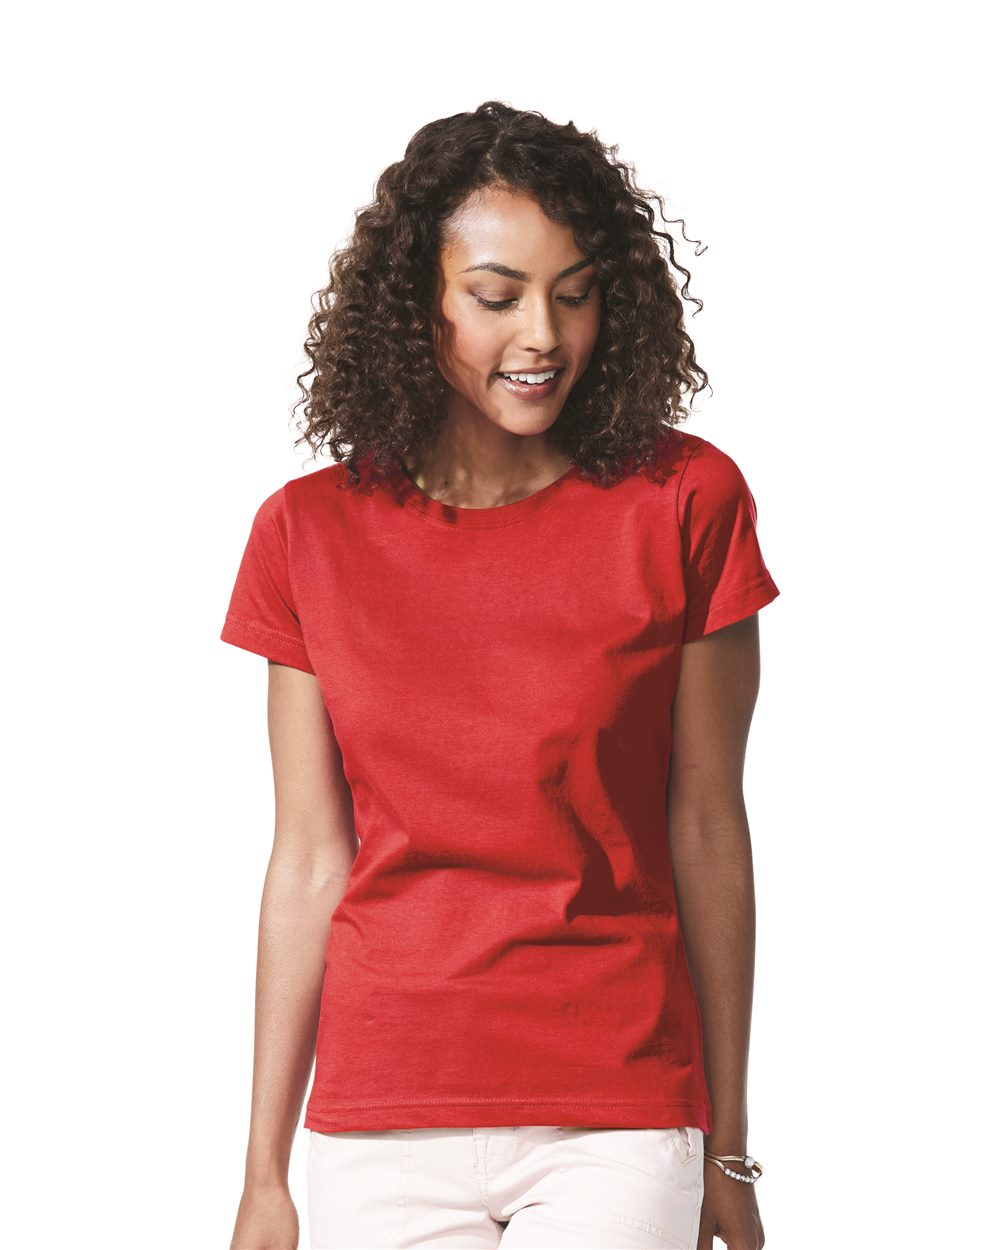 LAT - Does carry some plus size options in various styles.